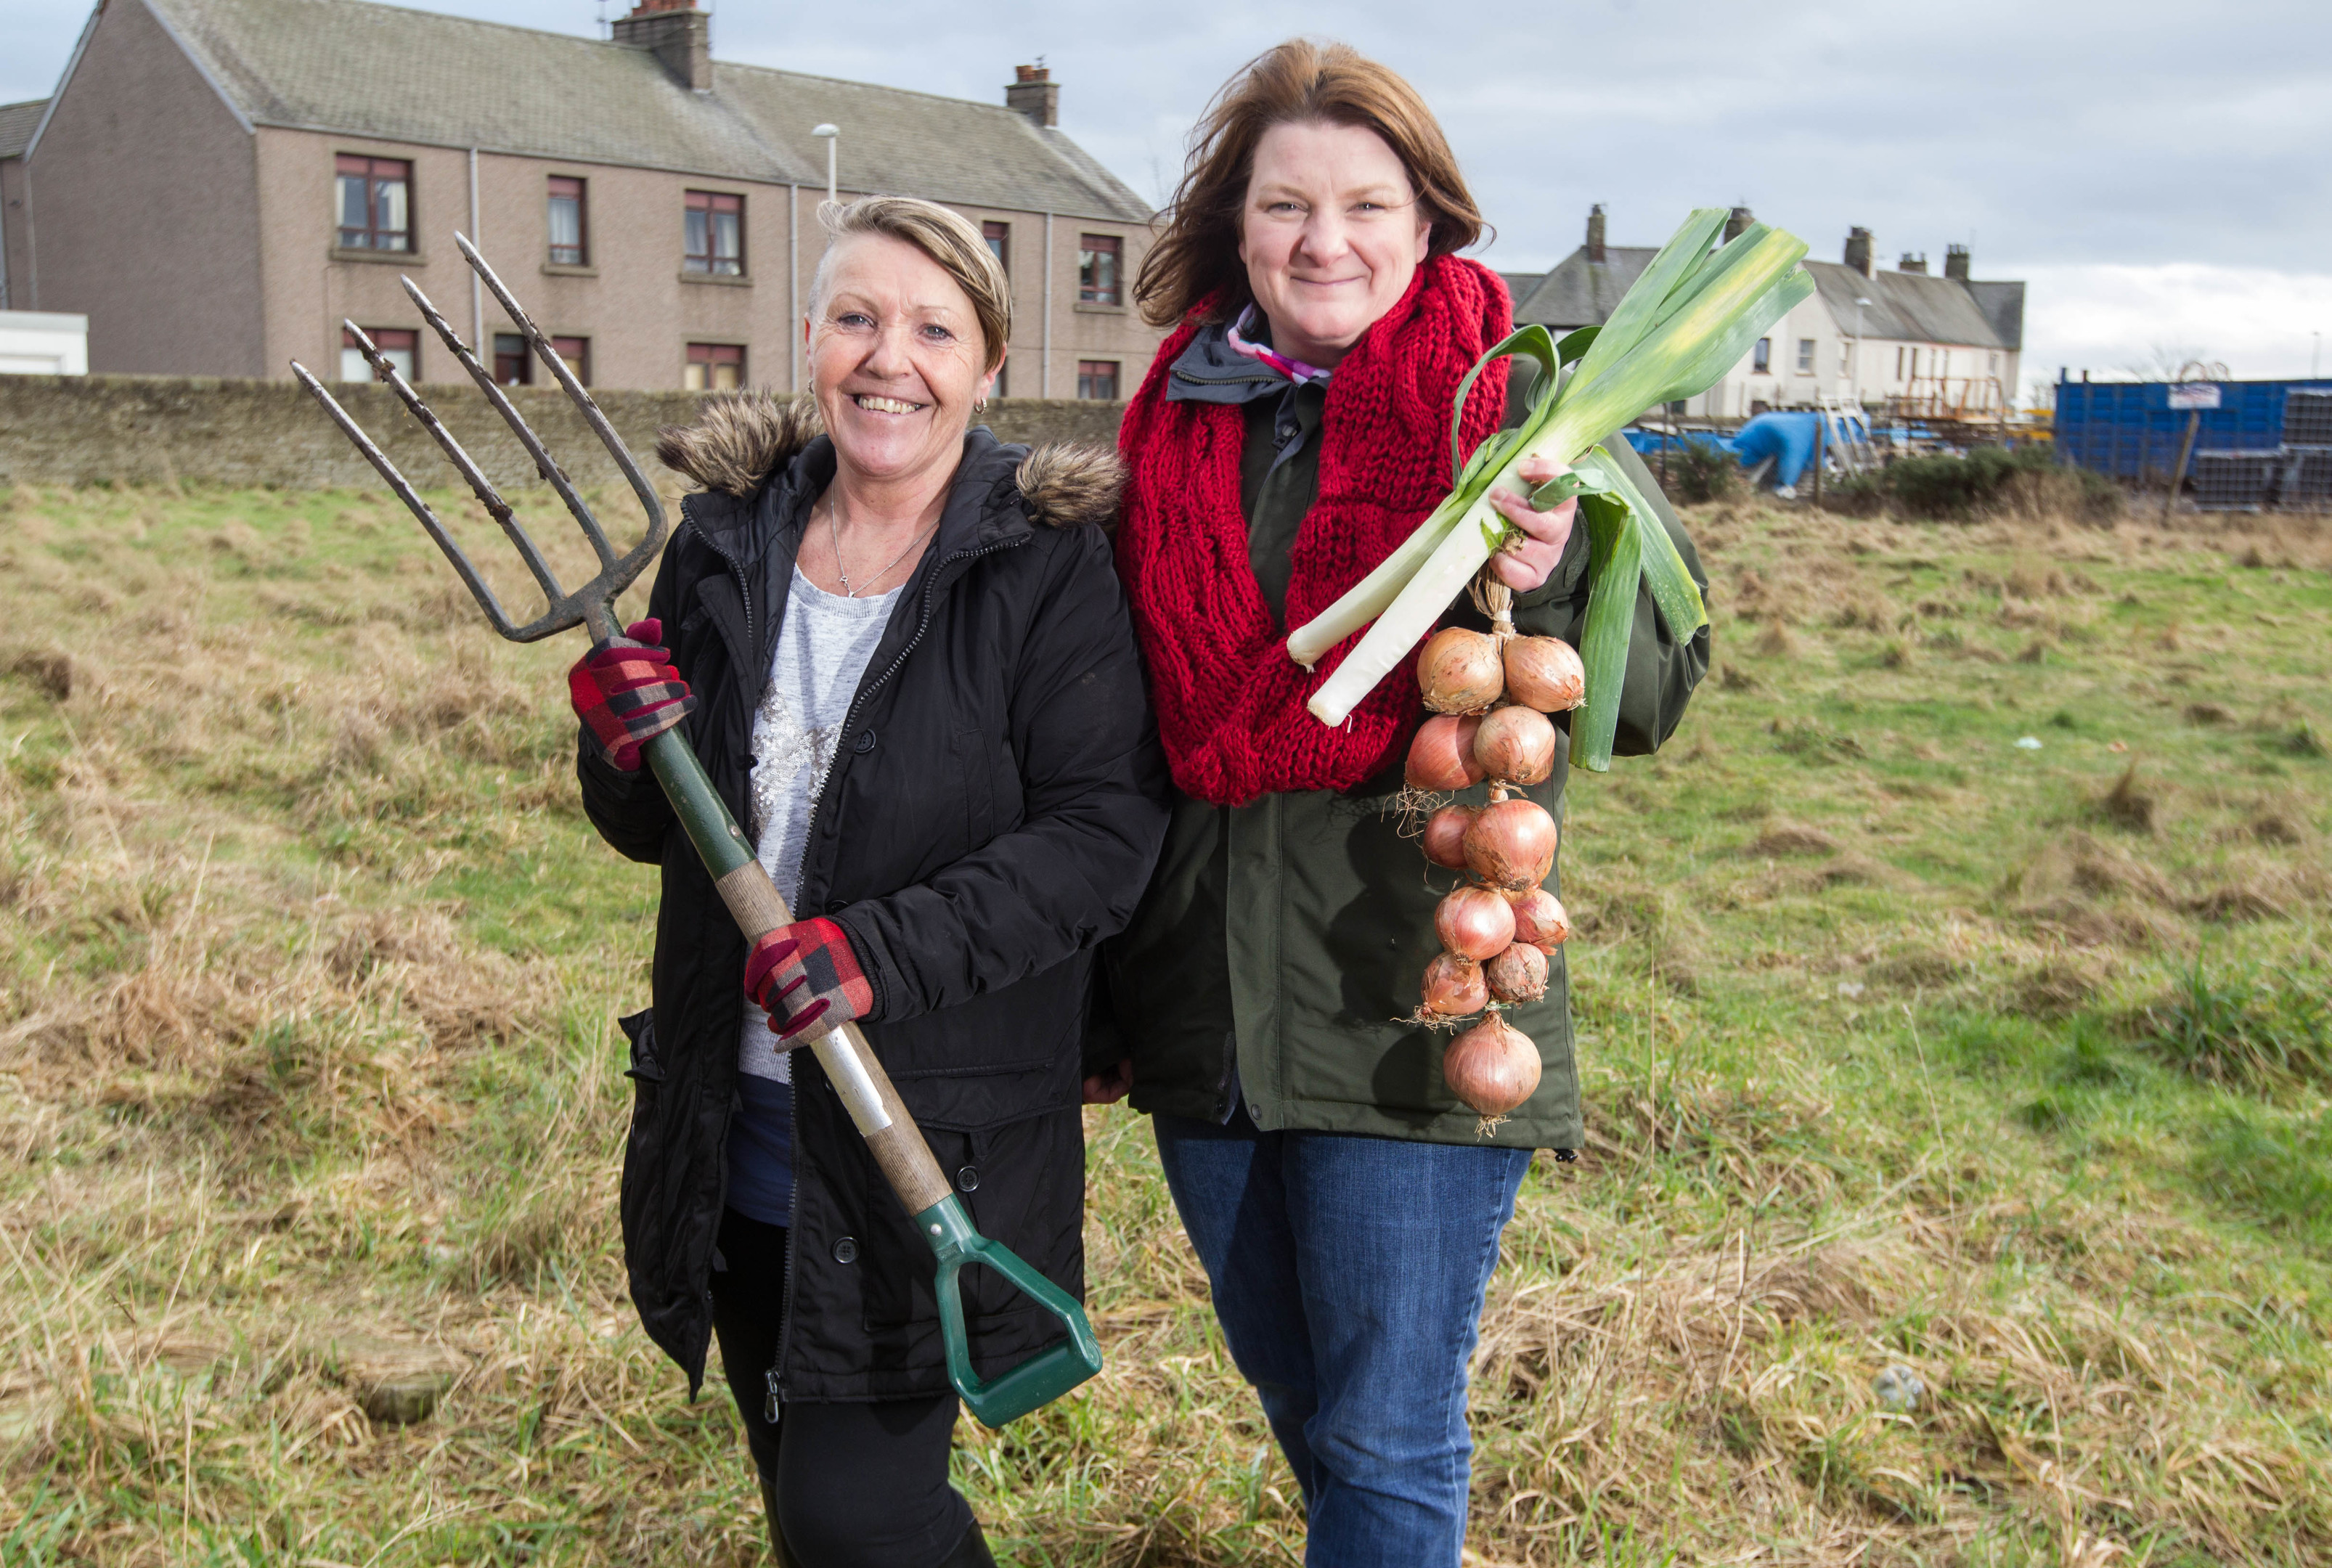 Laura Tierney (left) and Laura May Kennedy have a community garden in Carnoustie (Chris Austin / DC Thomson)